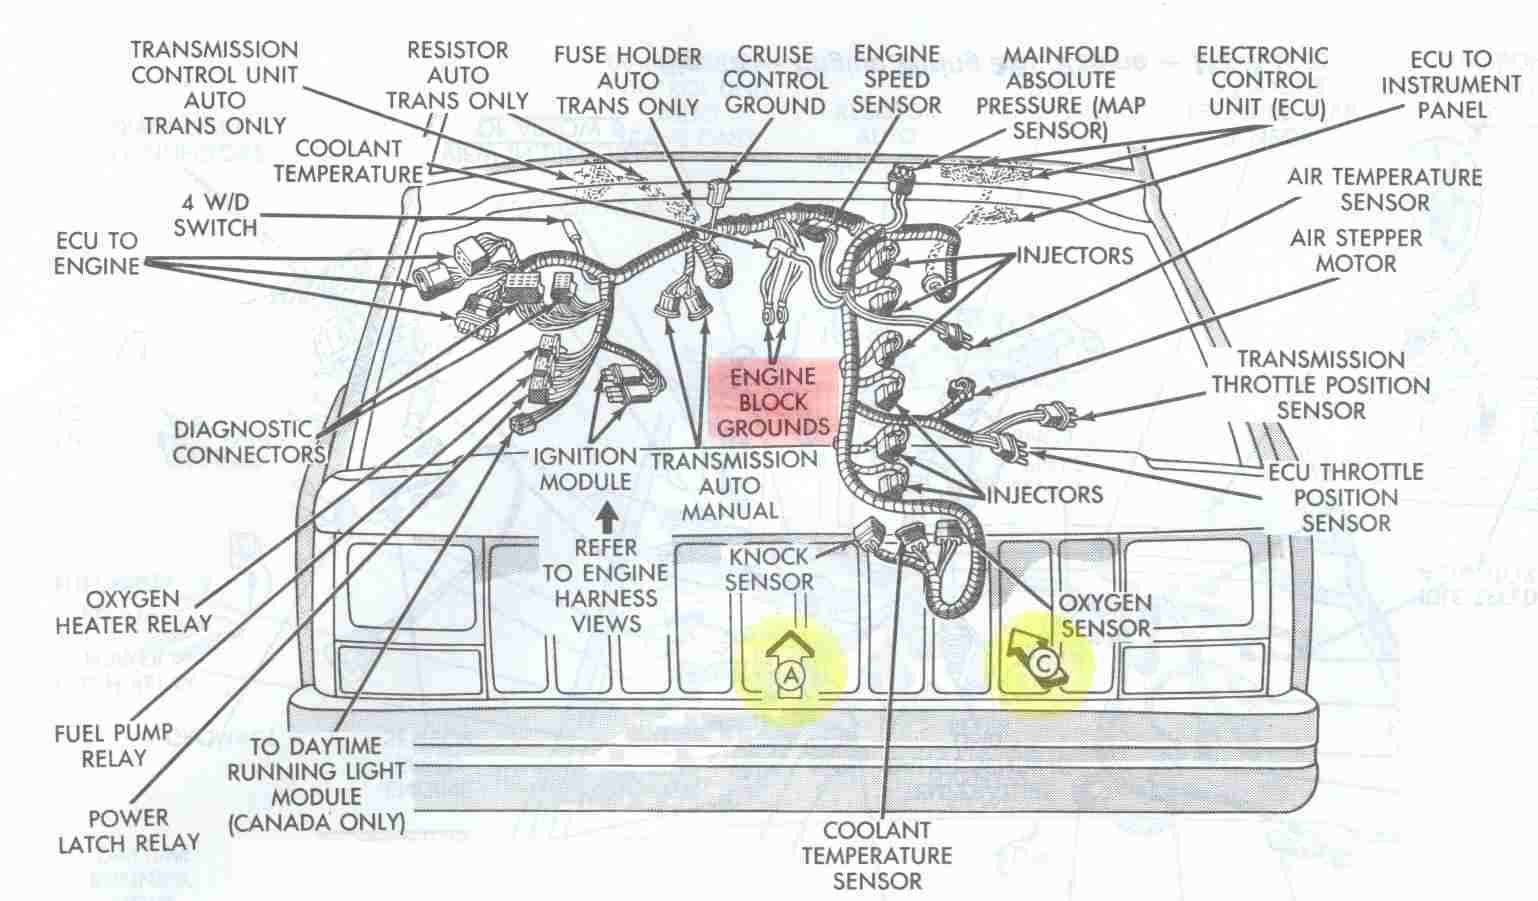 97 Jeep Grand Cherokee Engine Diagram Wiring Diagrams Fuse Box For 1997 200 Library Rh 6 Evitta De Laredo